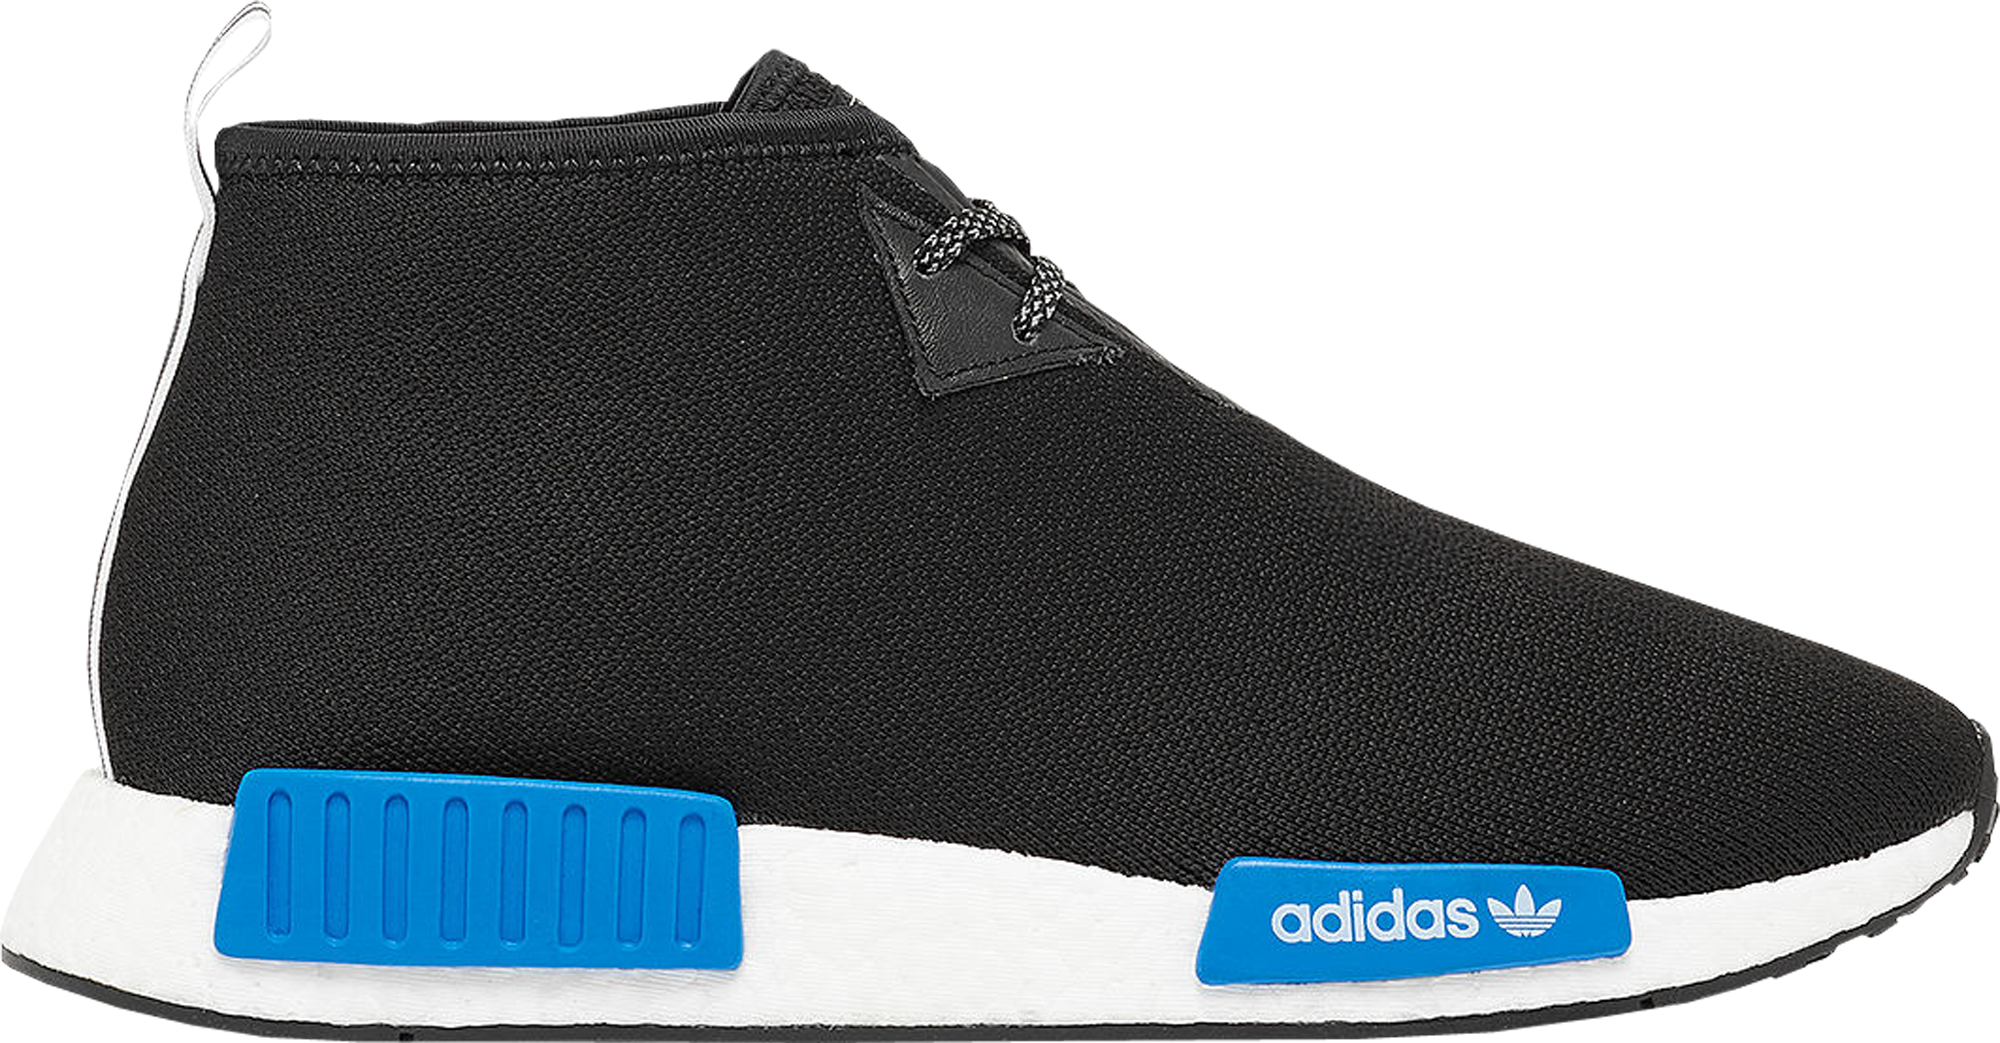 Adidas NMD C1 TR Gray S81834 Platinum Collection Cheap NMD C1